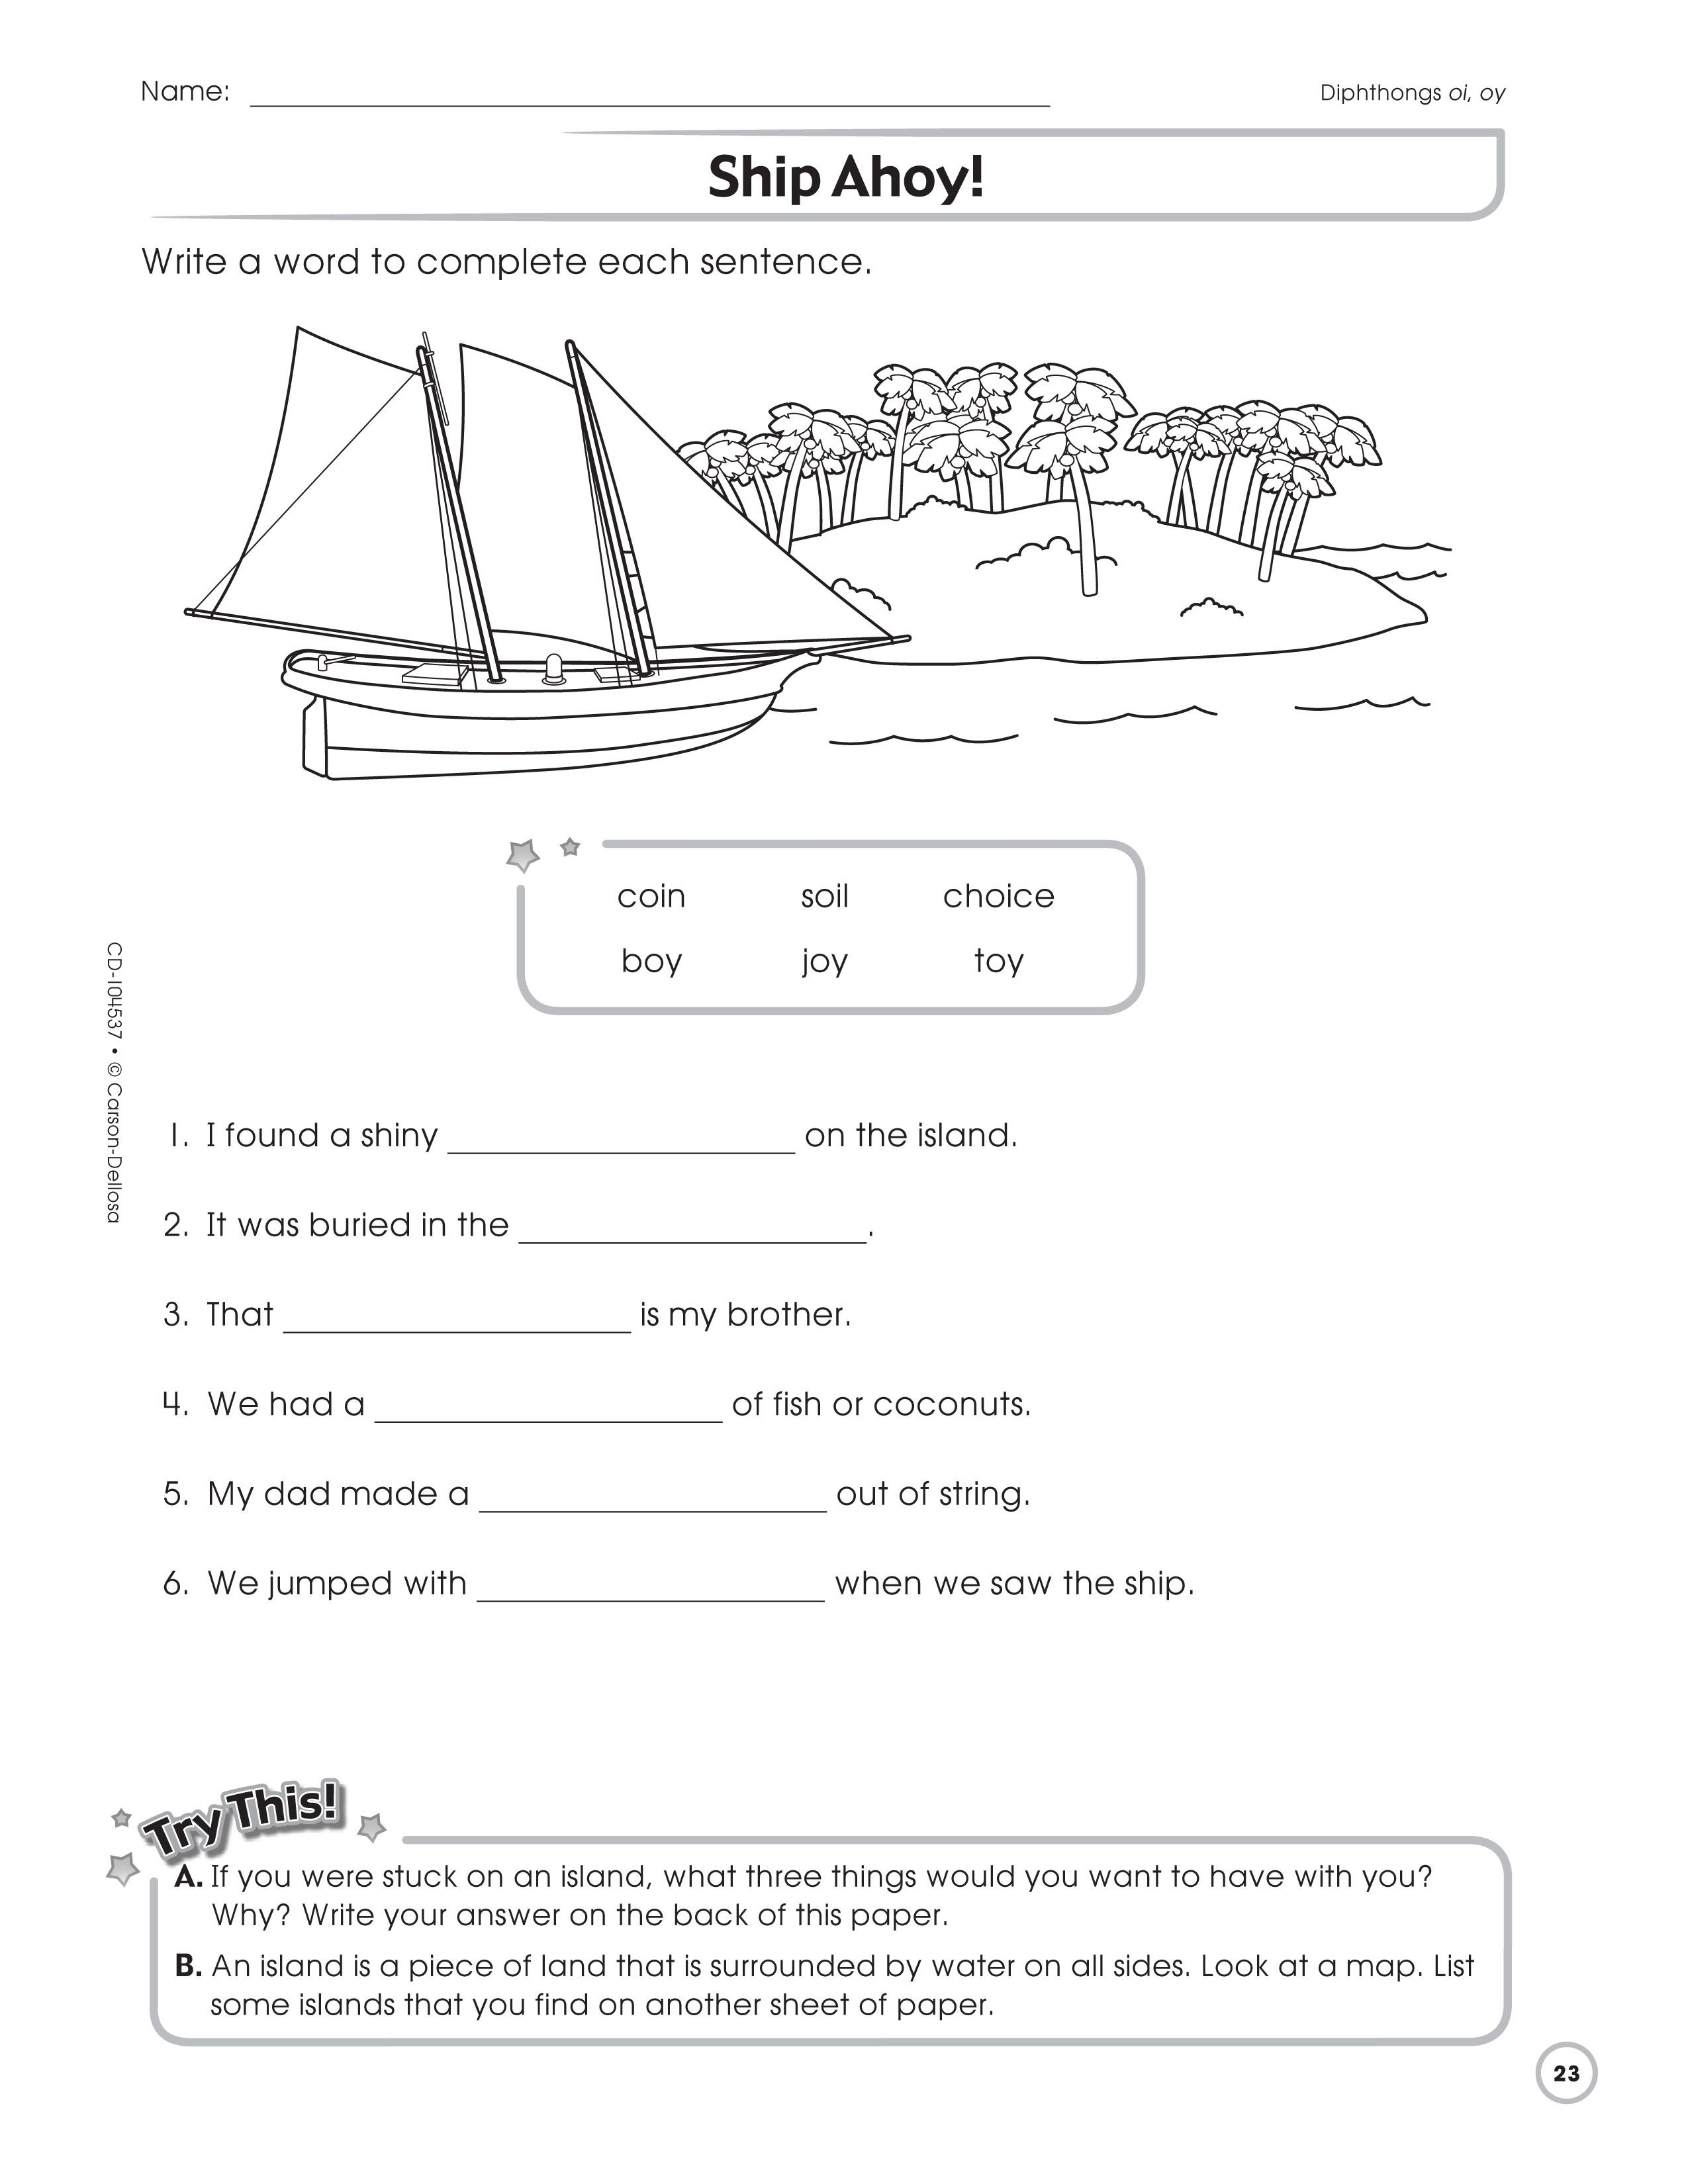 Ship Ahoy Is A Great Activity Sheet For Using When Working